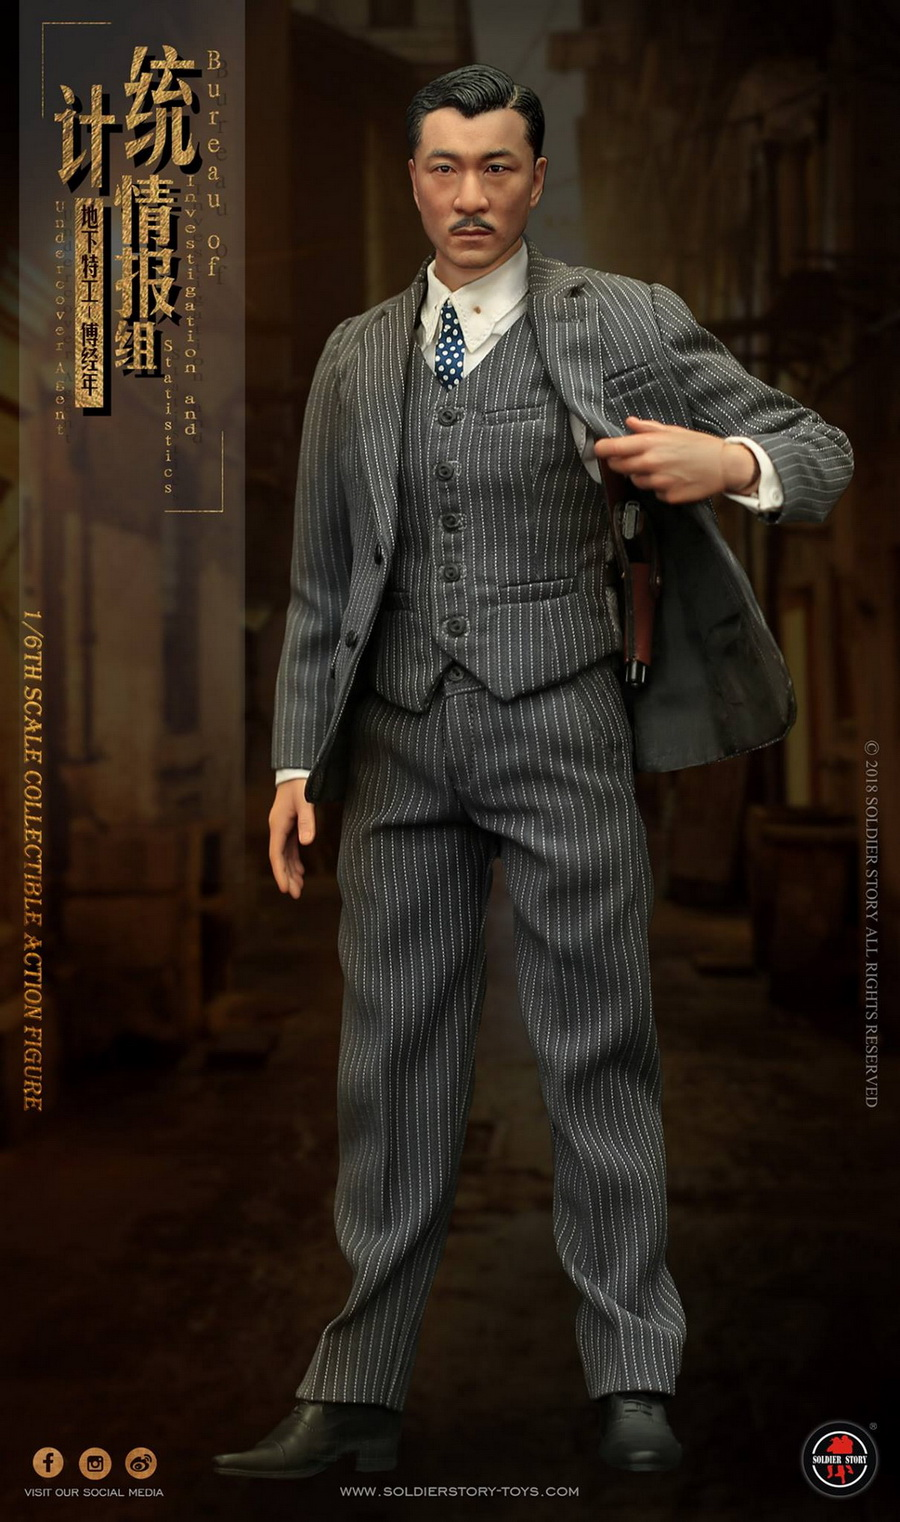 SoldierStory - NEW PRODUCT: SoldierStory new product: 1/6 World War II statistical intelligence group underground agent Fu Jingian - Shanghai 1942 (SS113#) 2101